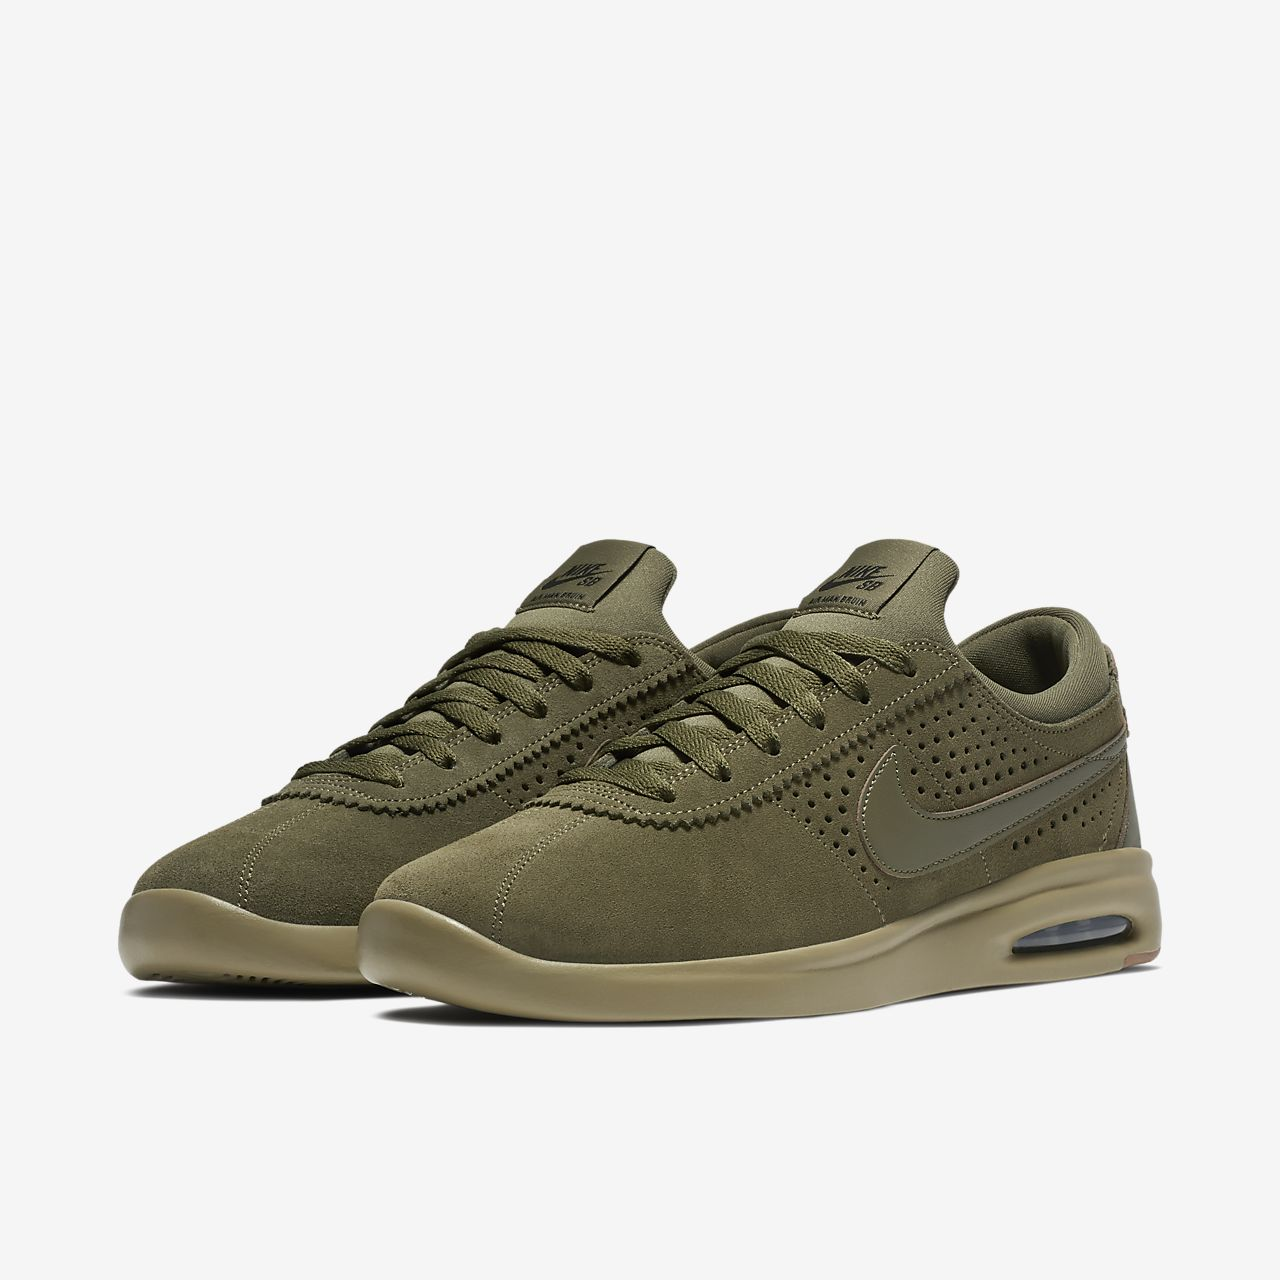 Nike SB Air Max Bruin Vapor Men's Skateboarding Shoes Brown uO8570Y